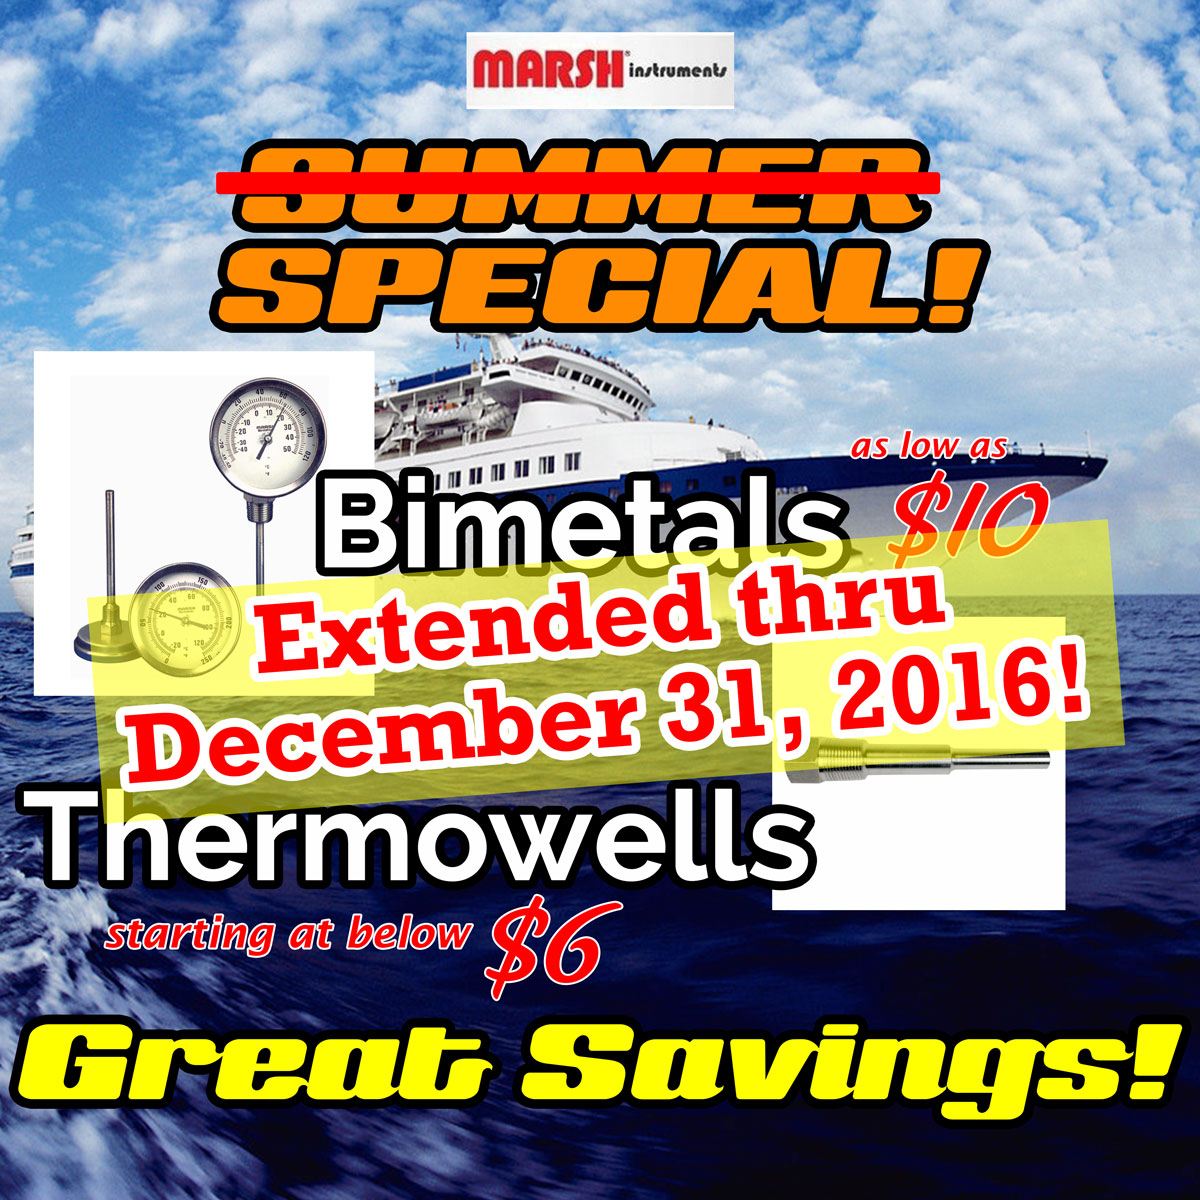 Marsh Instruments Special Pricing Extended on Bimetals and Thermowells